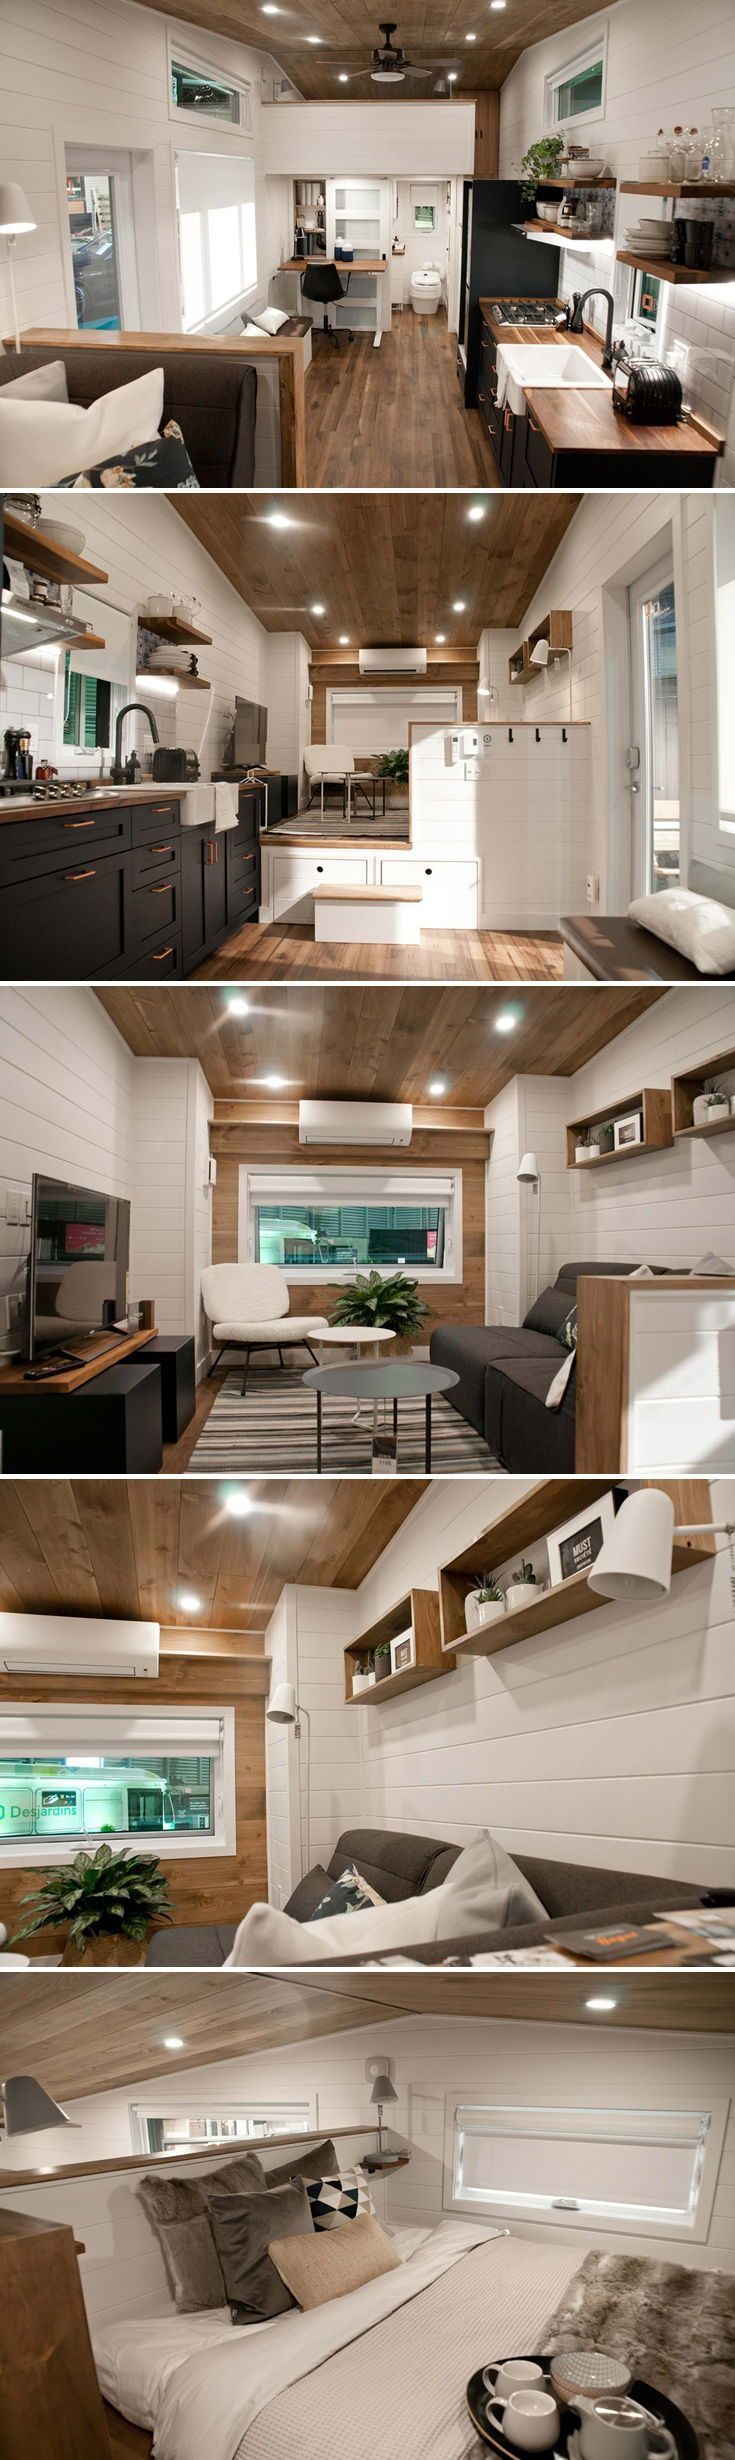 Noyer By Minimaliste Tinyhomes With Images Tiny House